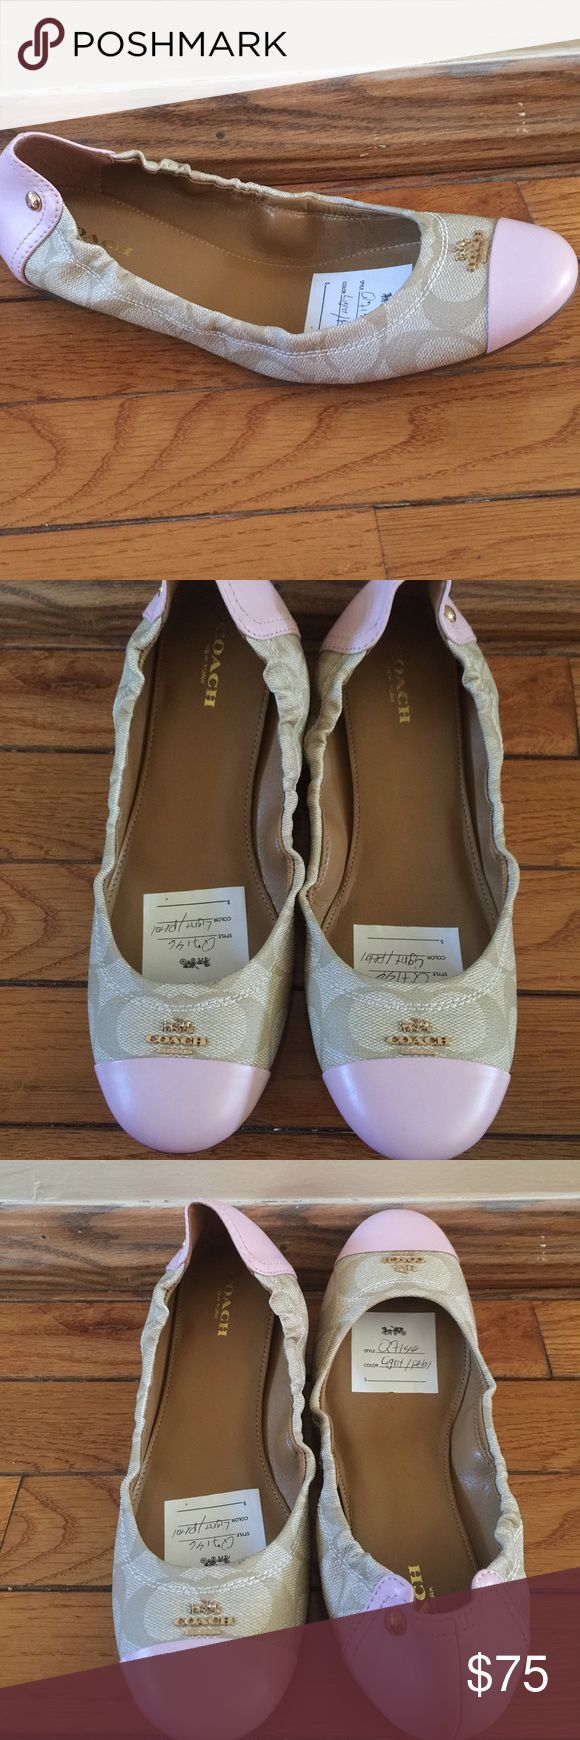 Coach ballerina flats. Coach ballerina flats with signature logo and gold hardware. These are perfect for the summer months. Coach Shoes Flats & Loafers